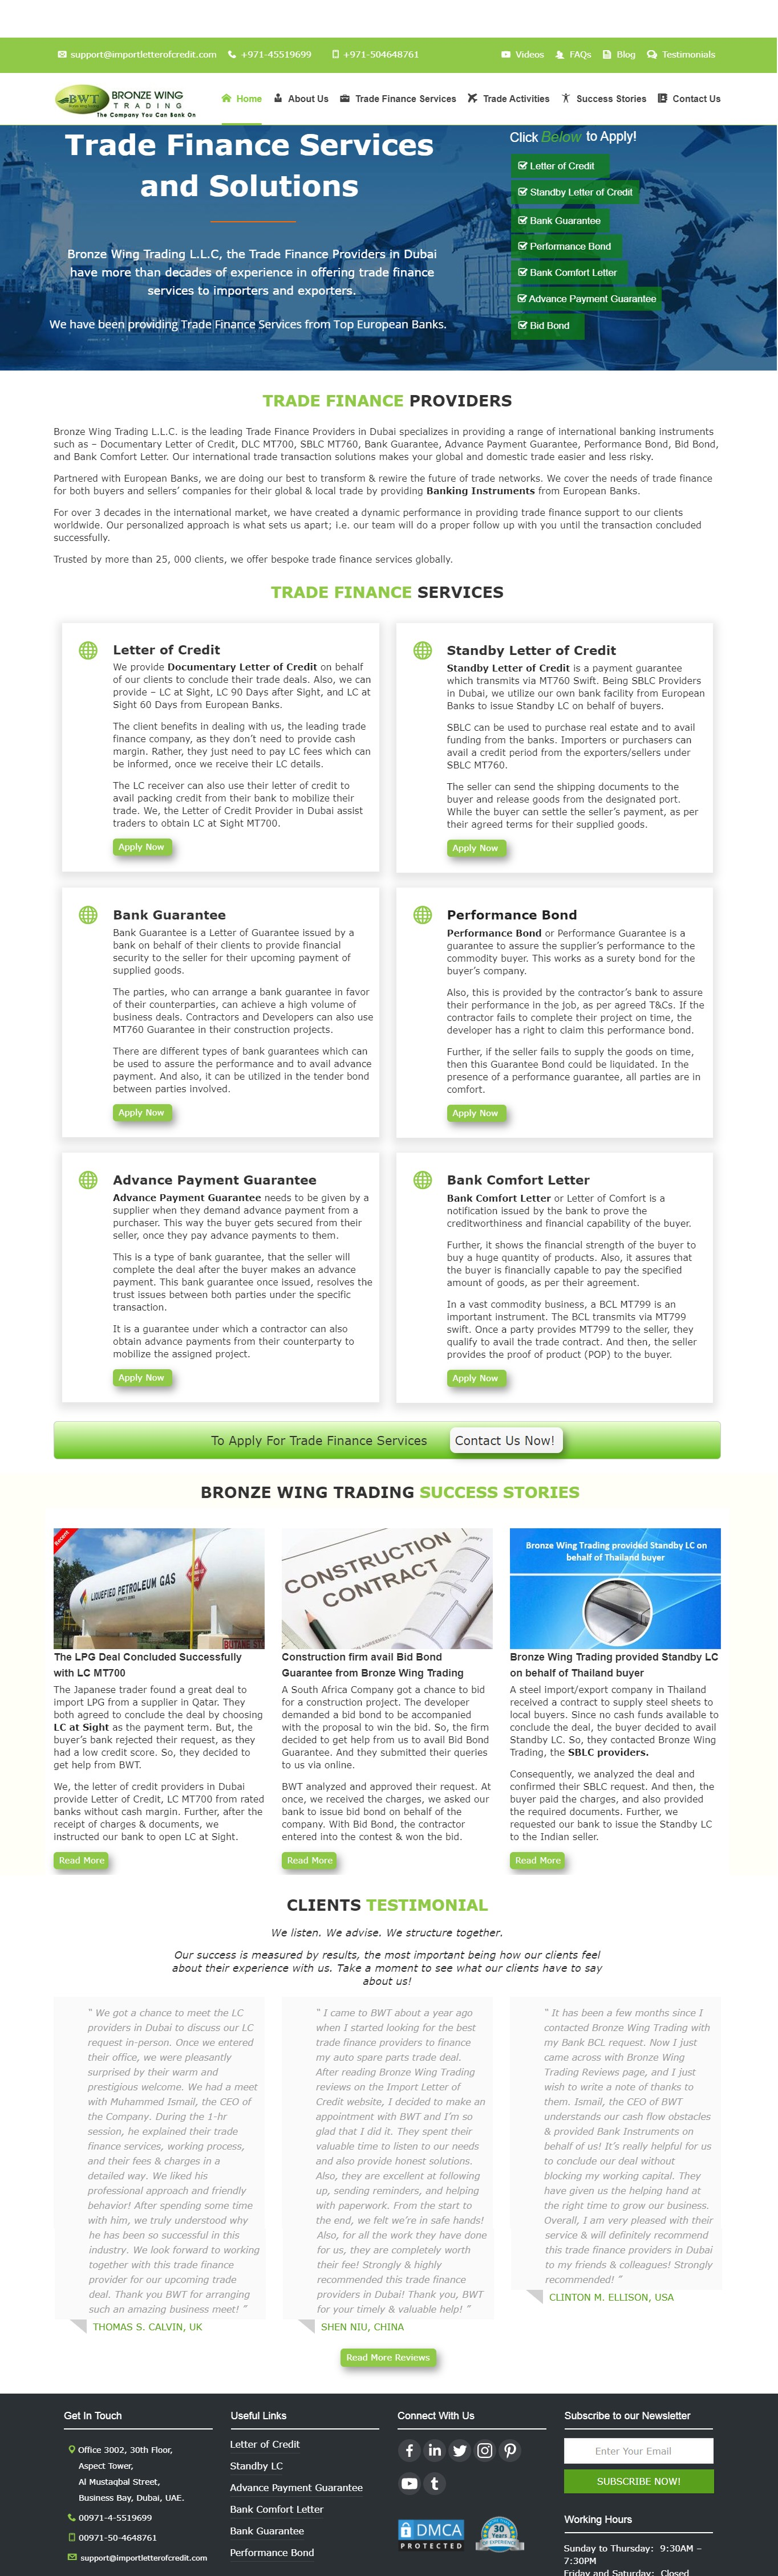 Contact the Best Trade Finance Providers in Dubai